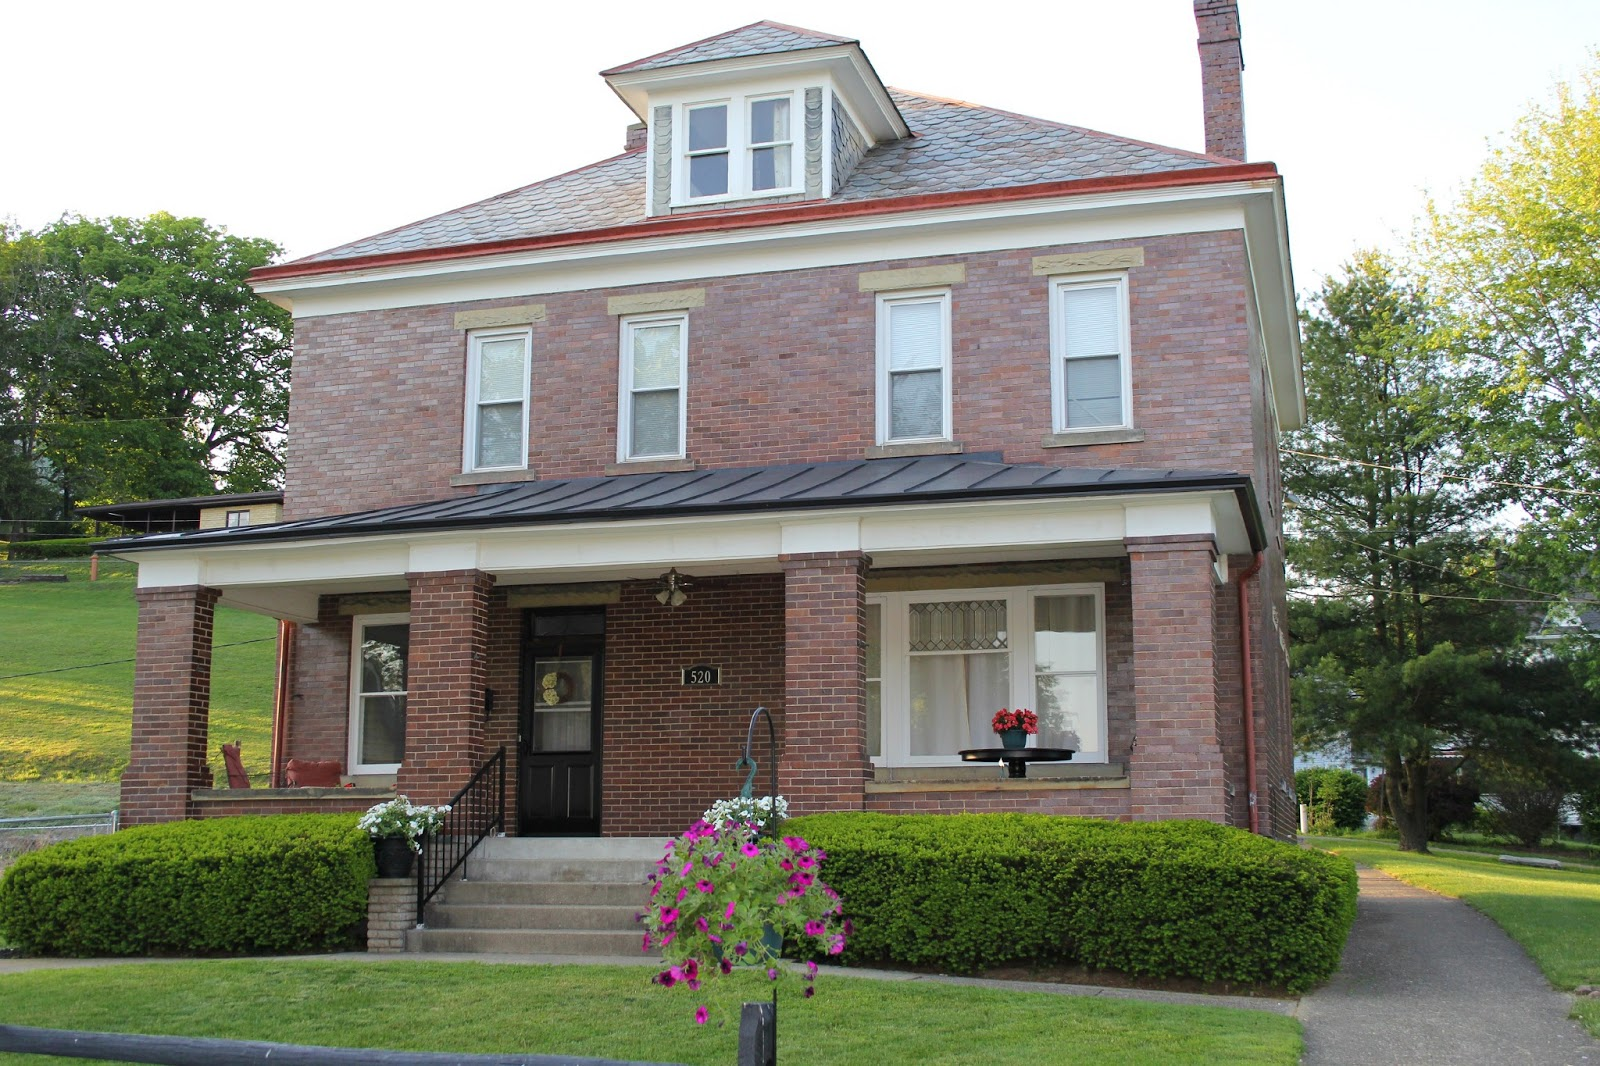 Logan house for sale historic 3 story brick house on n for Three story house for sale